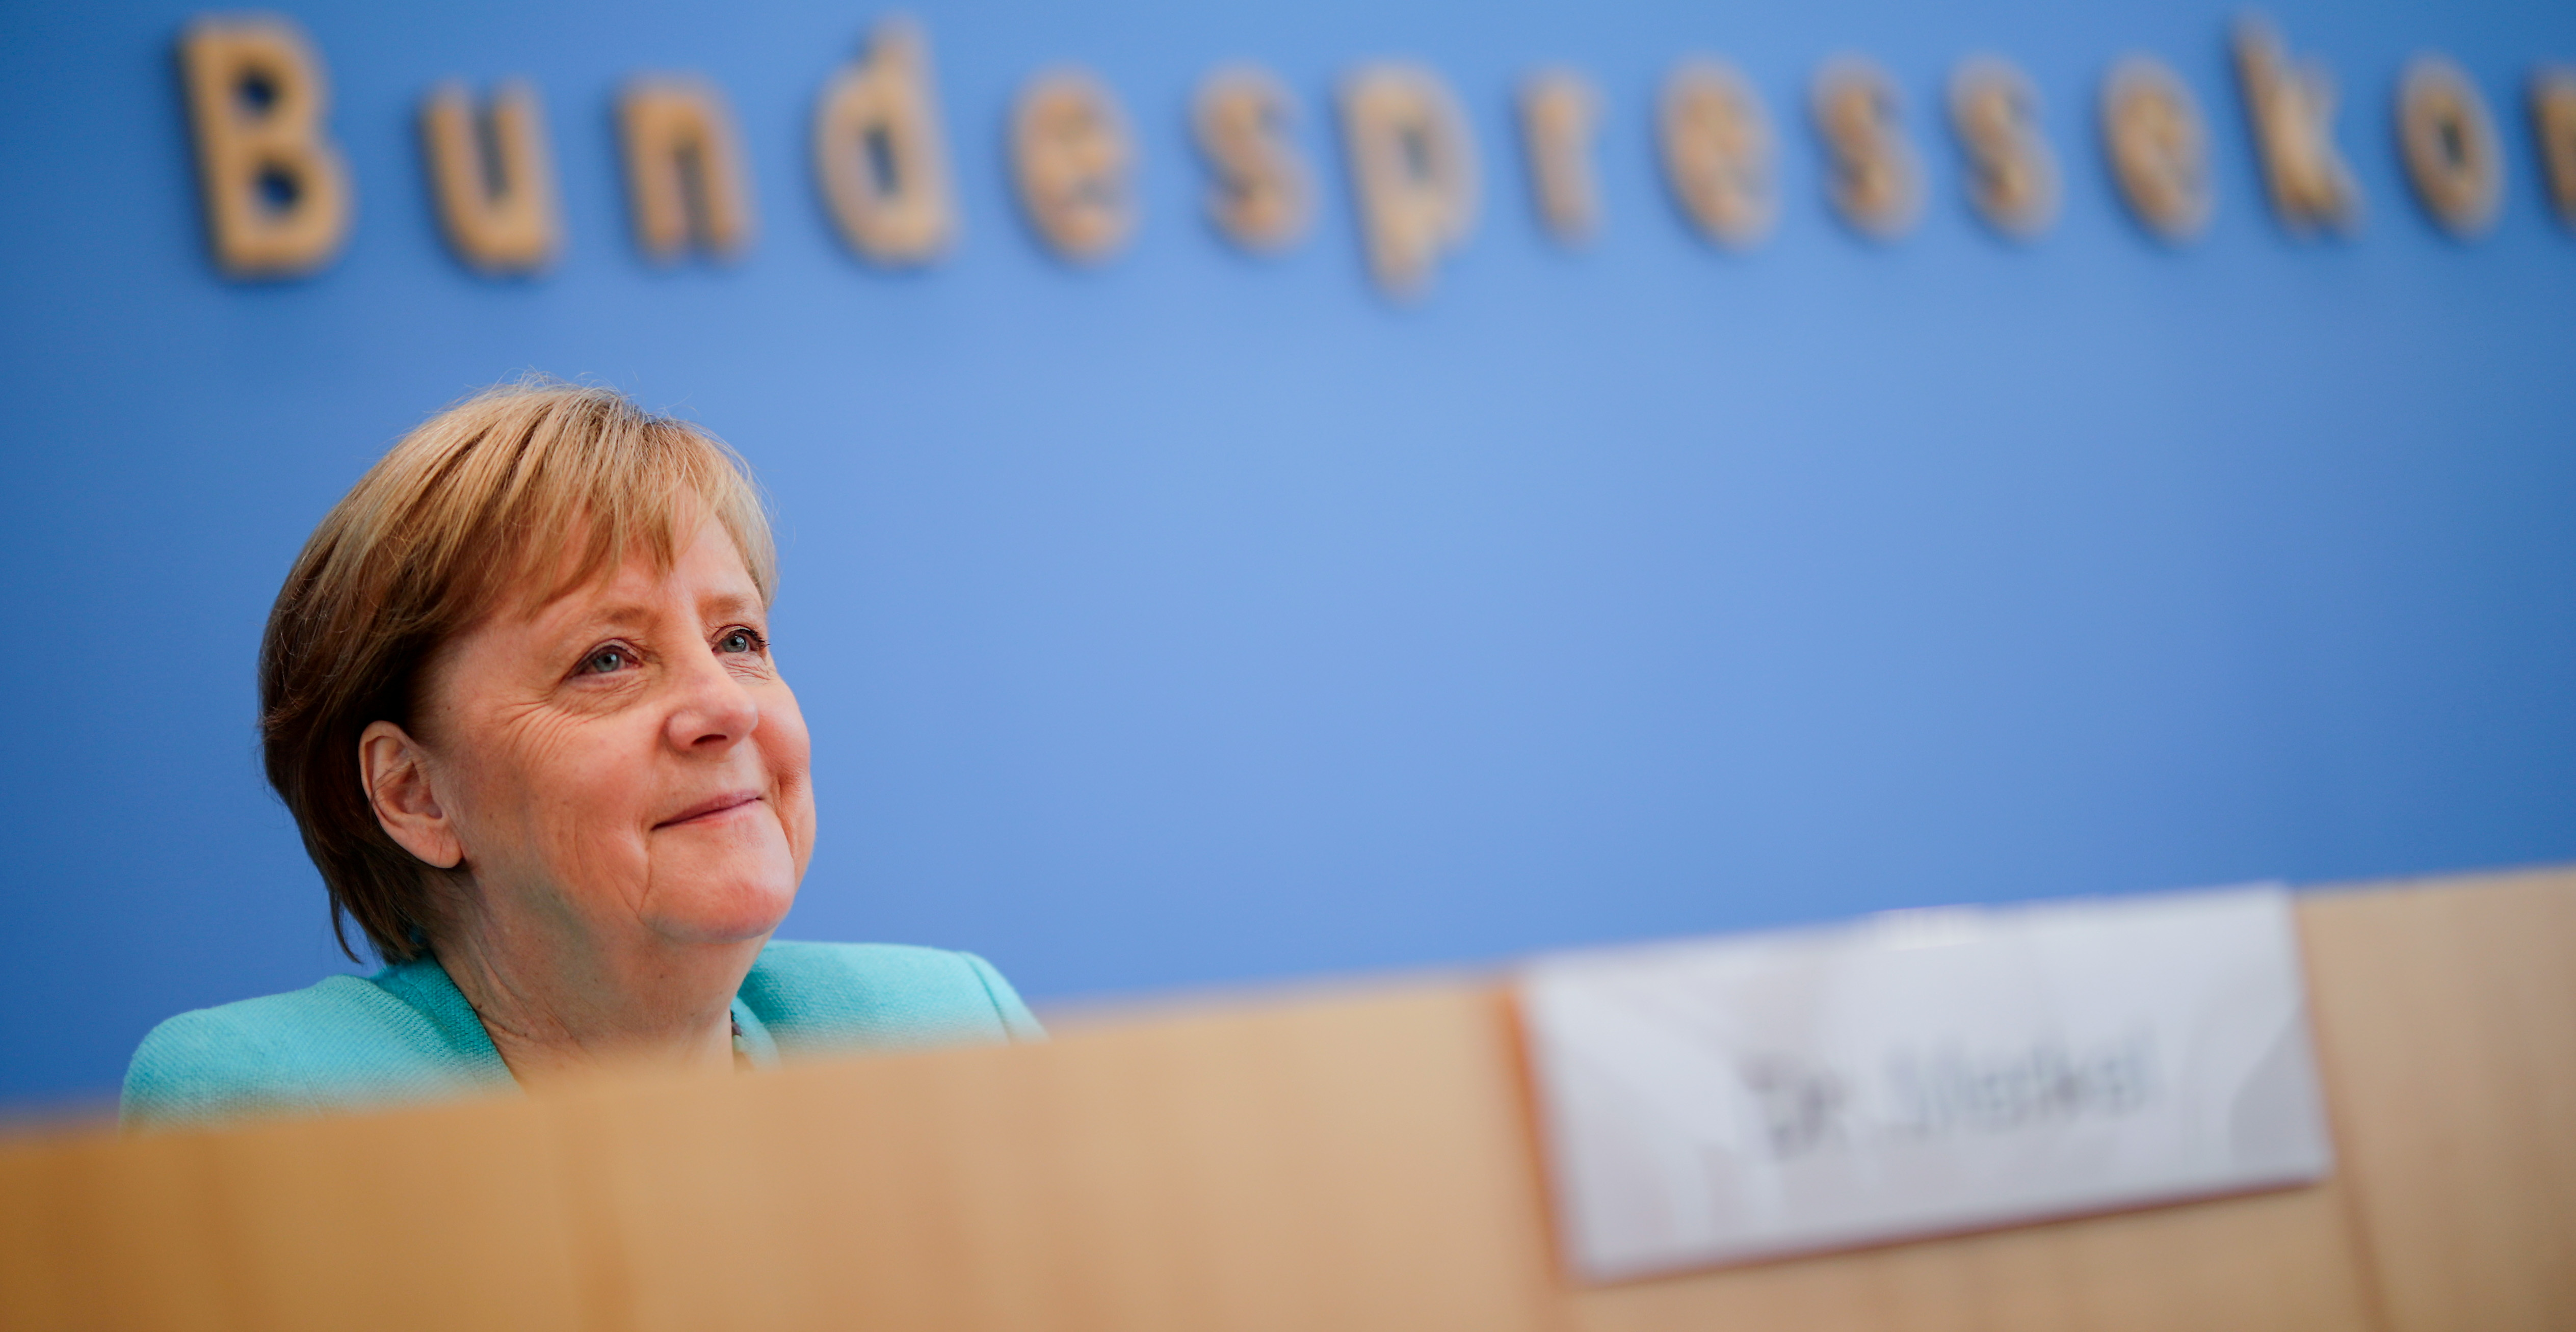 German Chancellor Angela Merkel holds her annual summer news conference in Berlin, Germany, July 22, 2021. REUTERS/Hannibal Hanschke/Pool